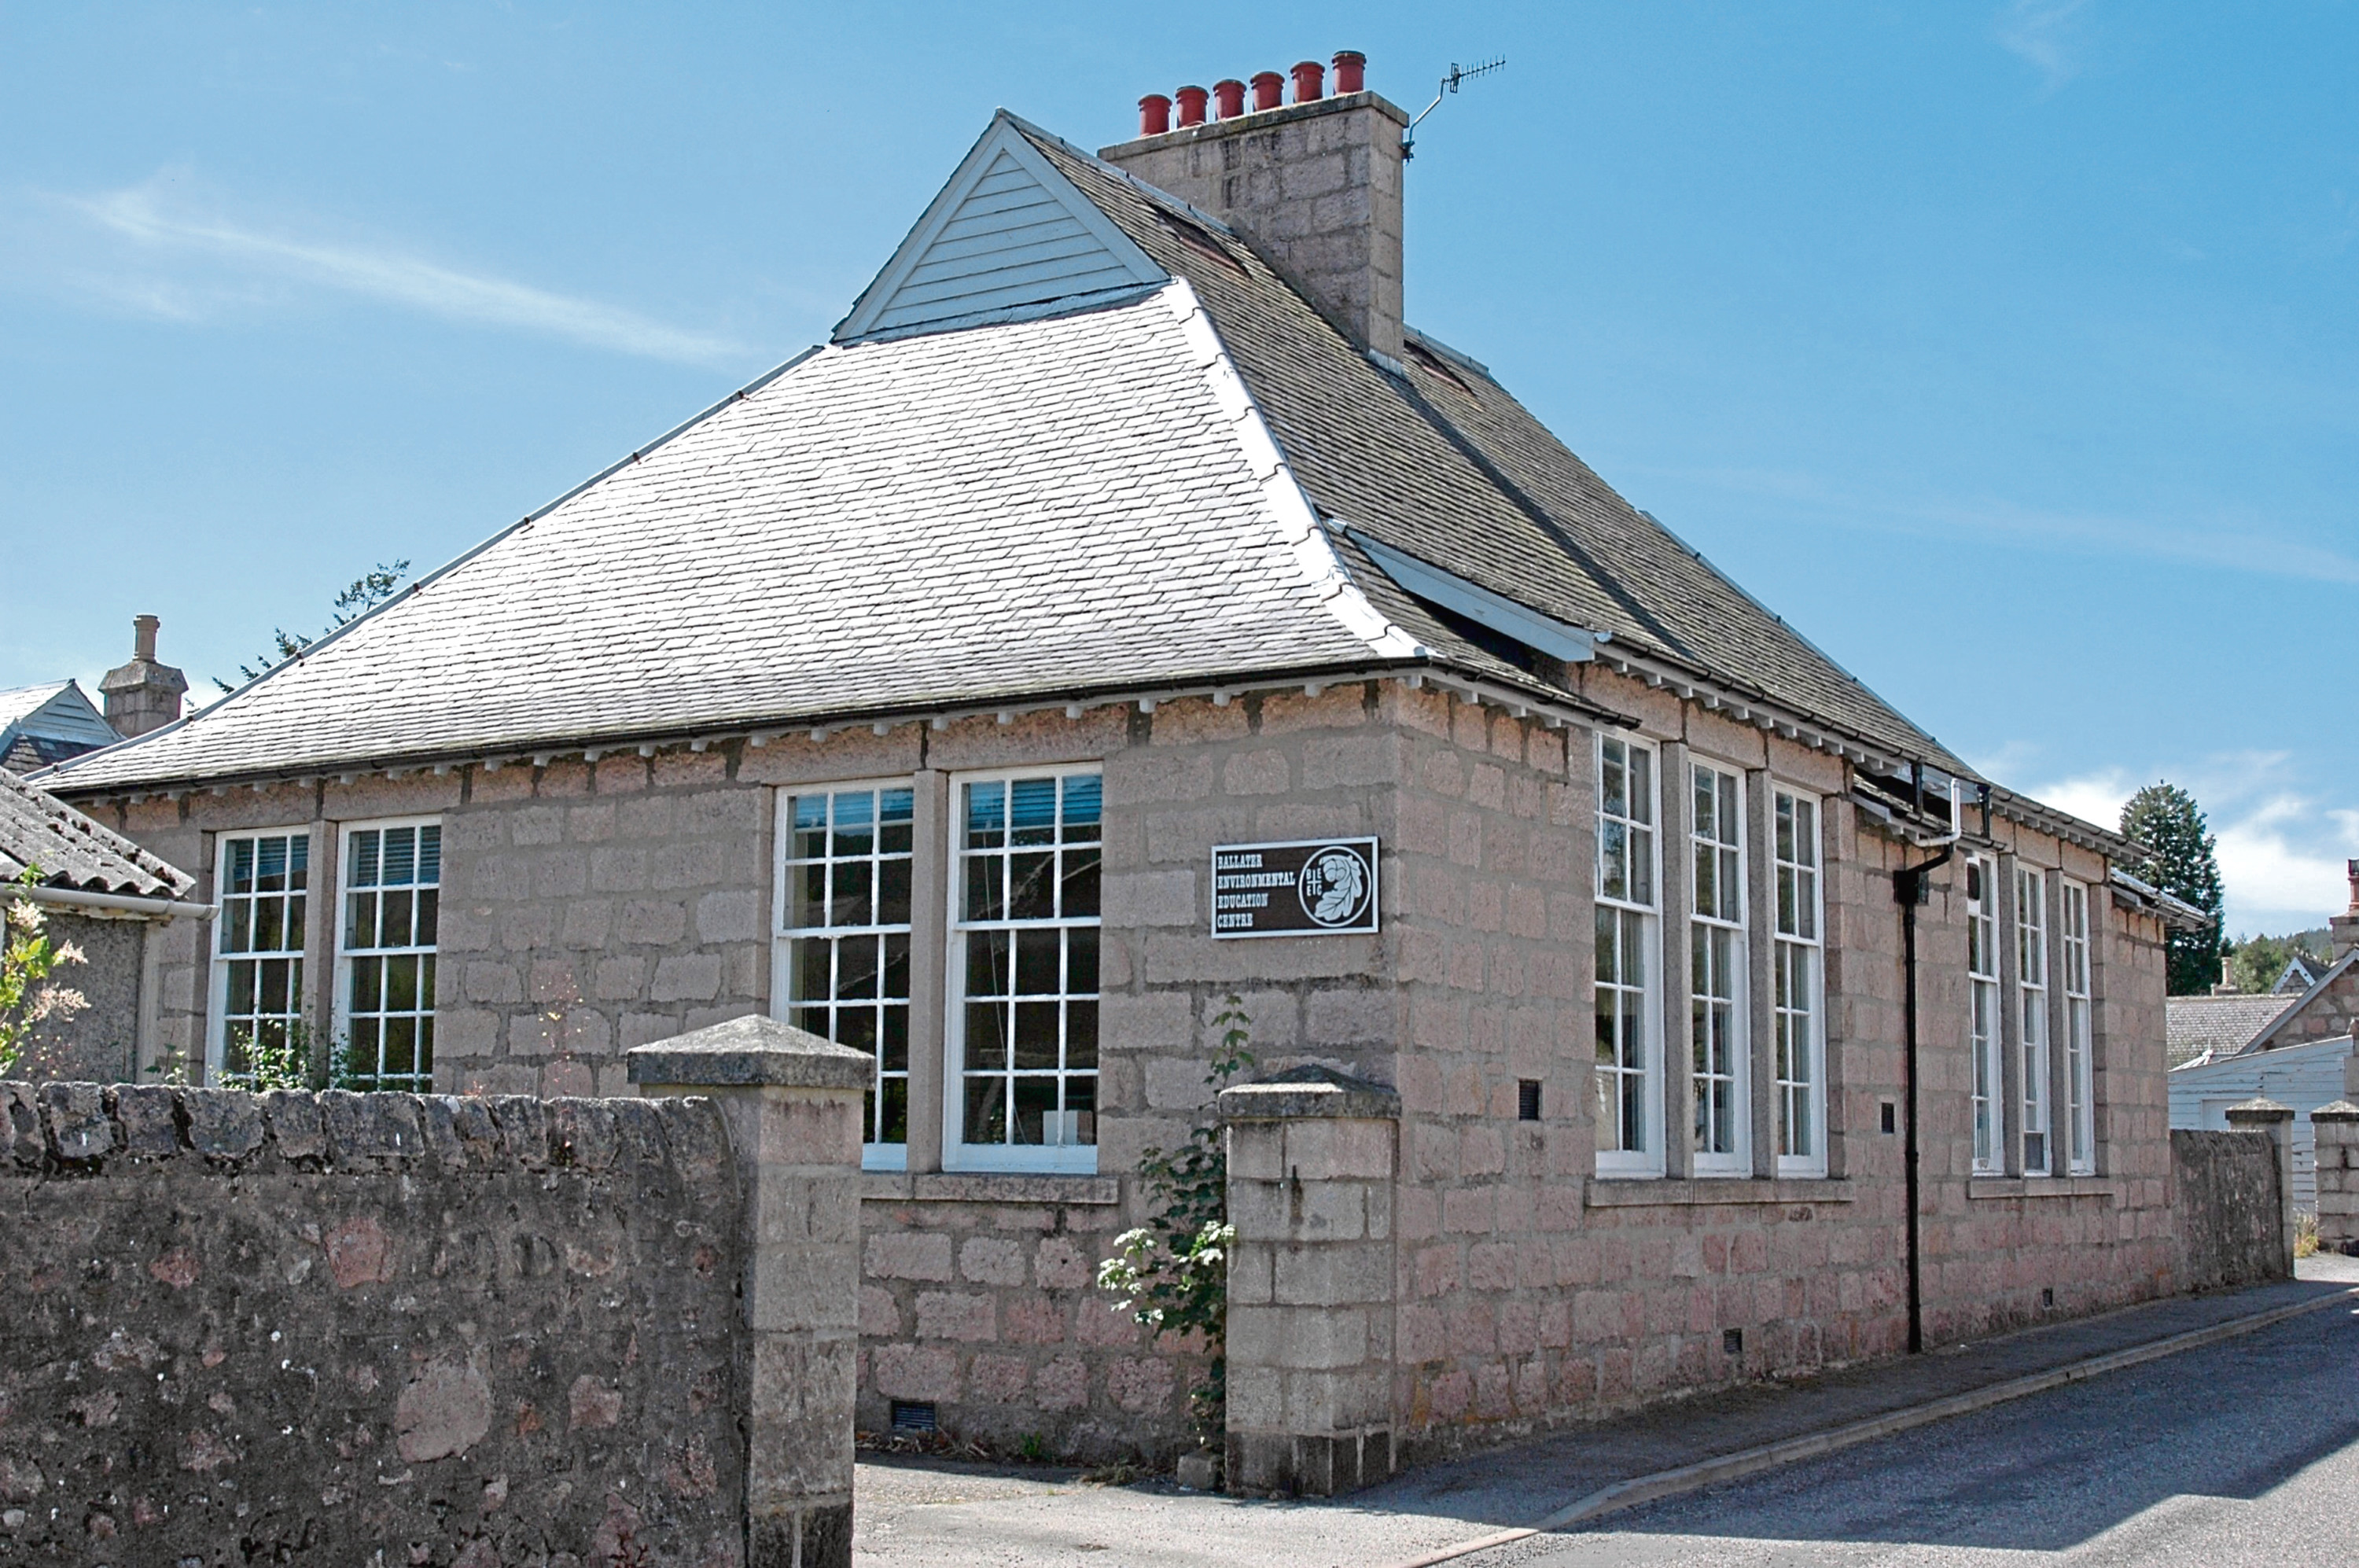 A Ballater group is making a determined effort to turn the old village school into an asset for the local community.